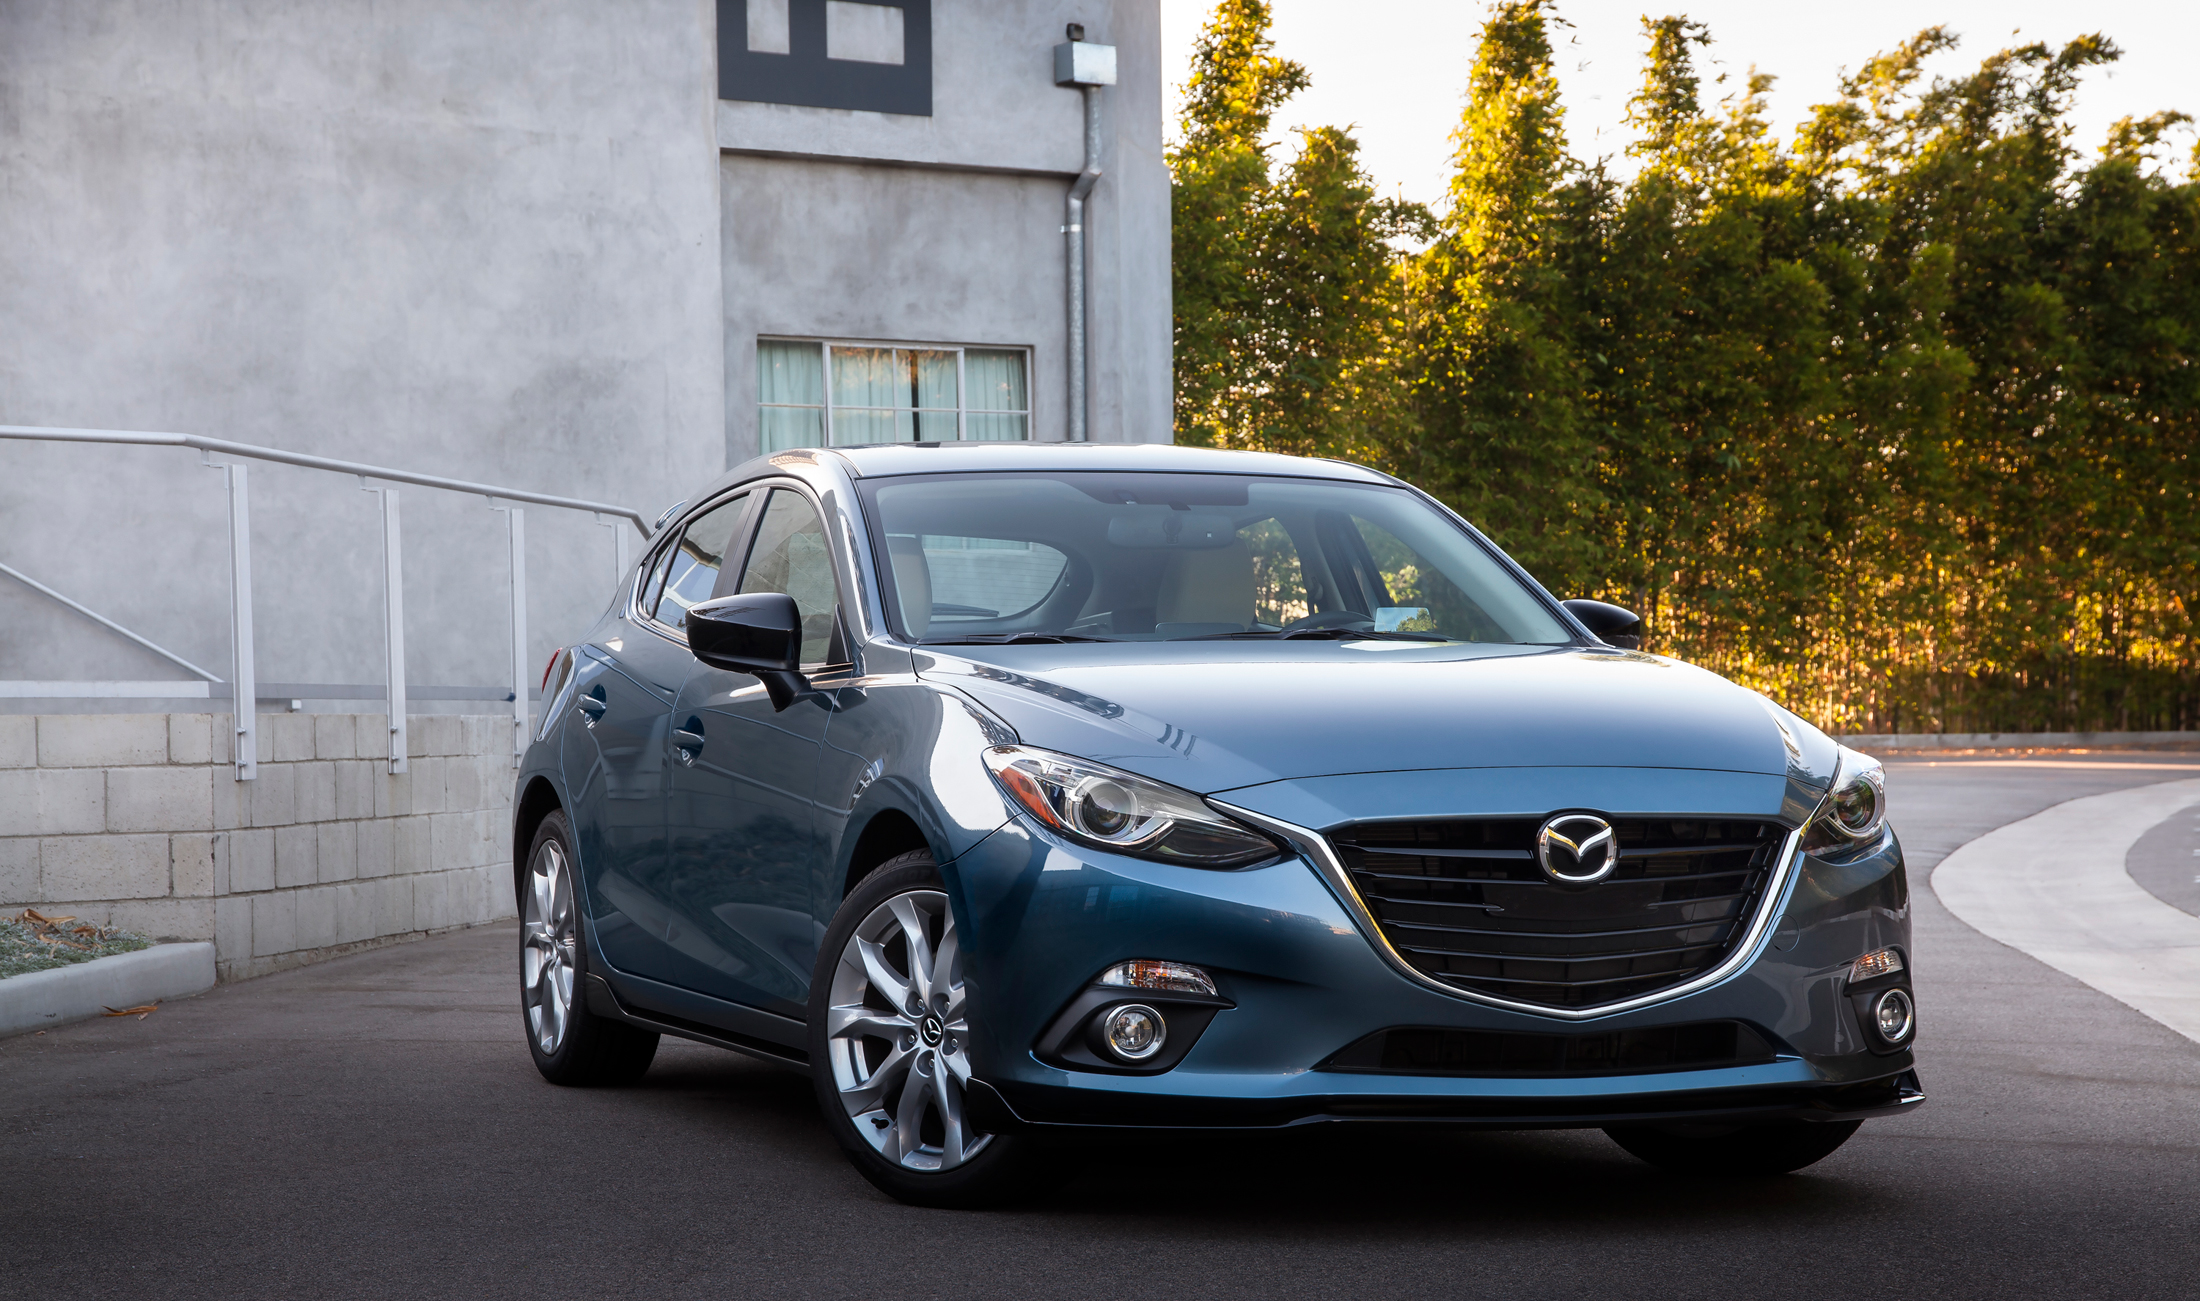 zoom door touring grand mazda review the hatchback objective mane s zoomzoom